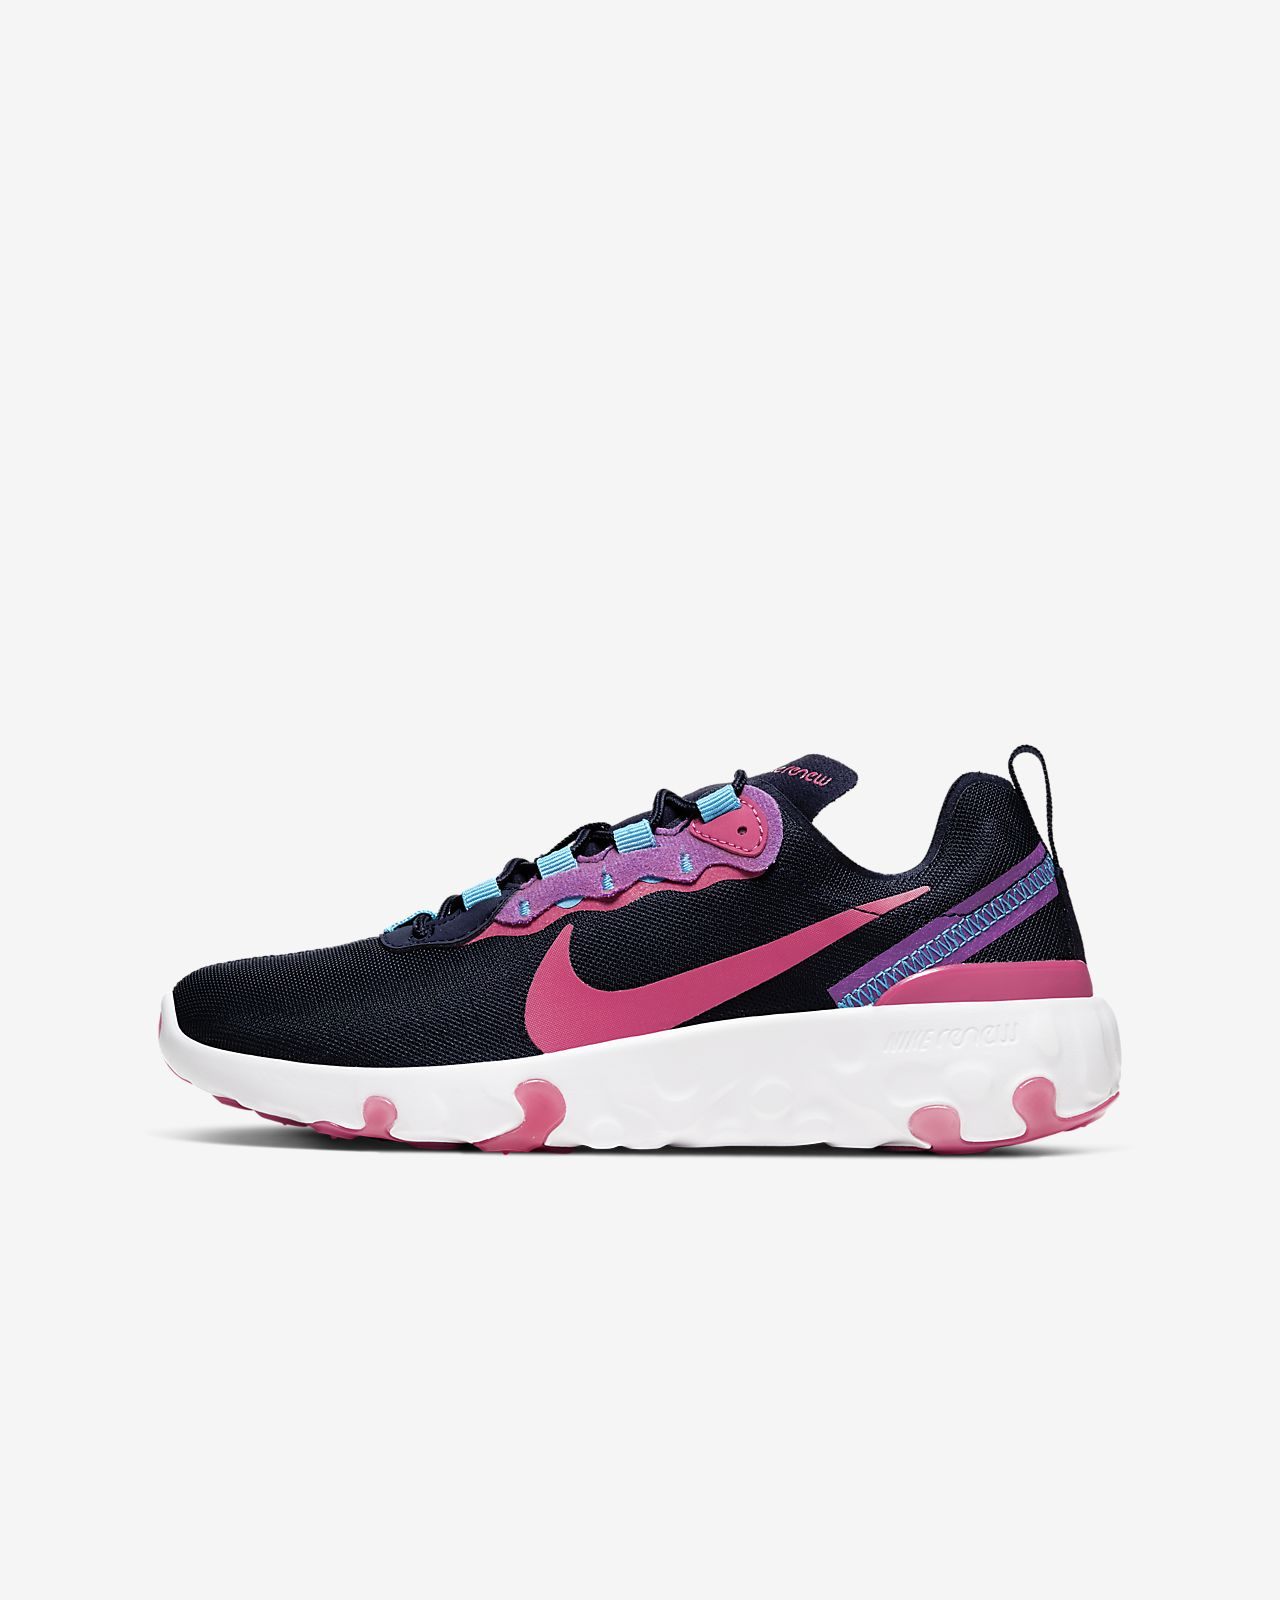 nike air max 90 womens shoes watermelon black pink nz|Free